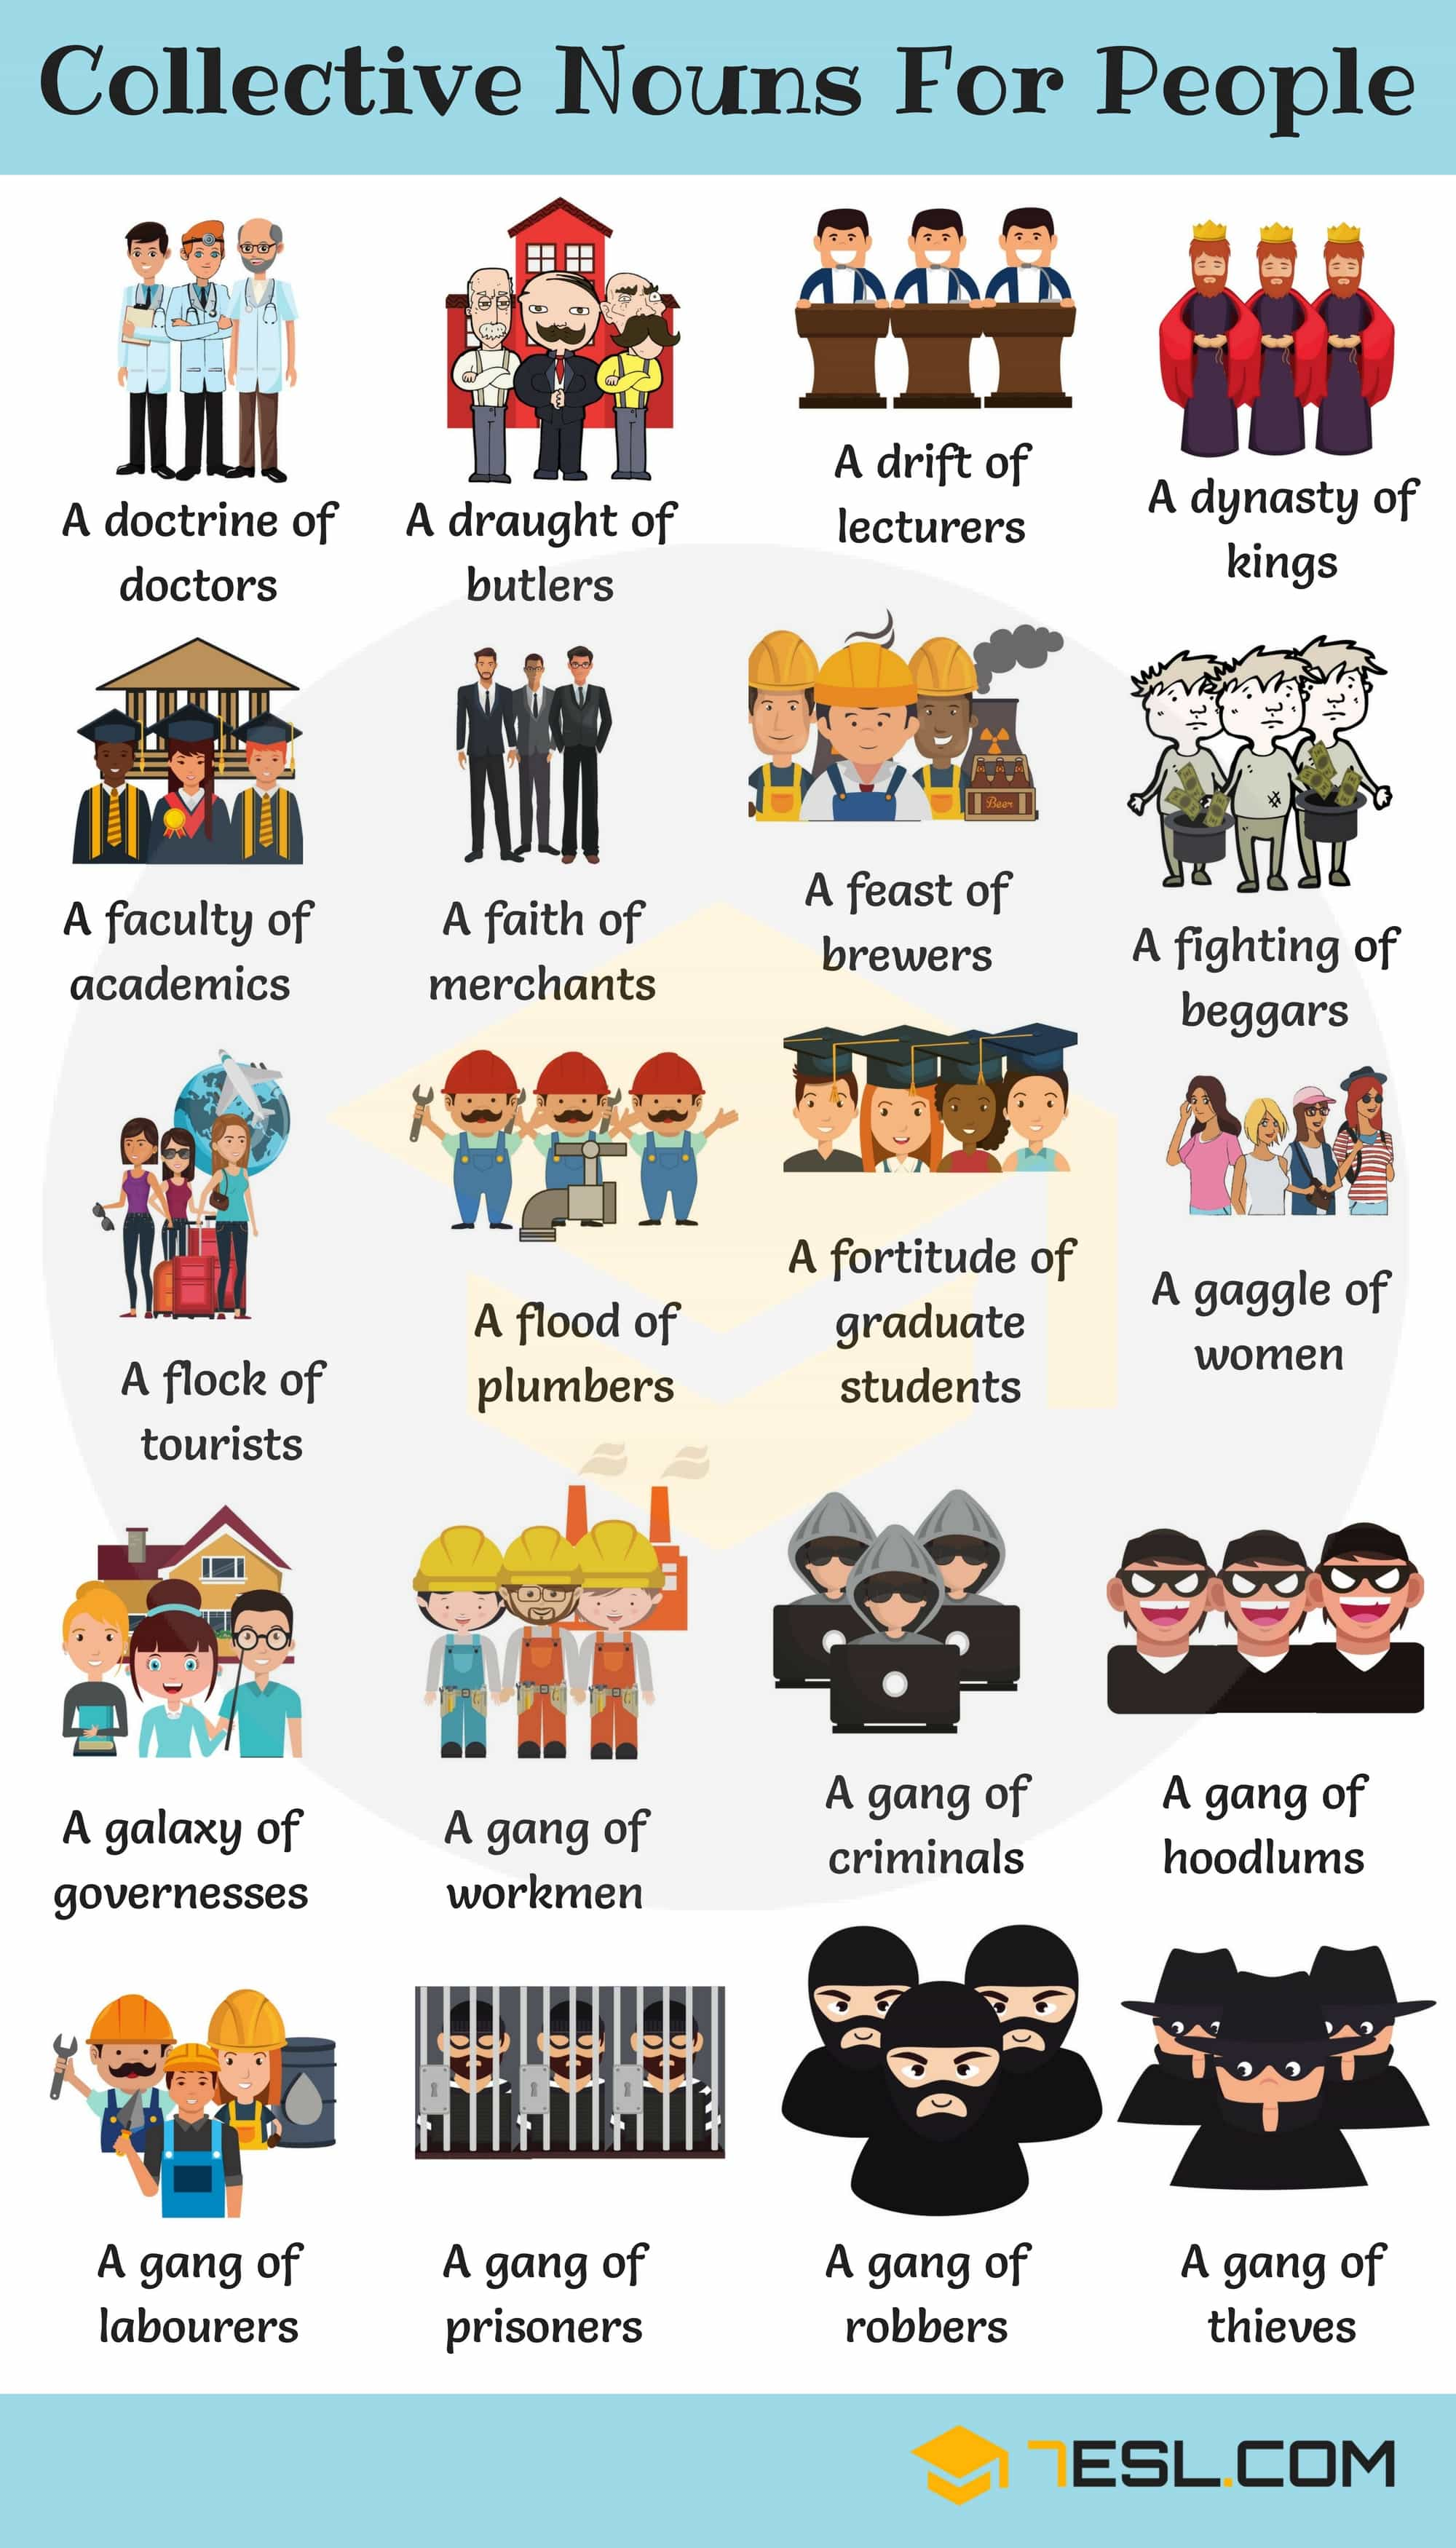 Collective Nouns for People - Groups of People Image